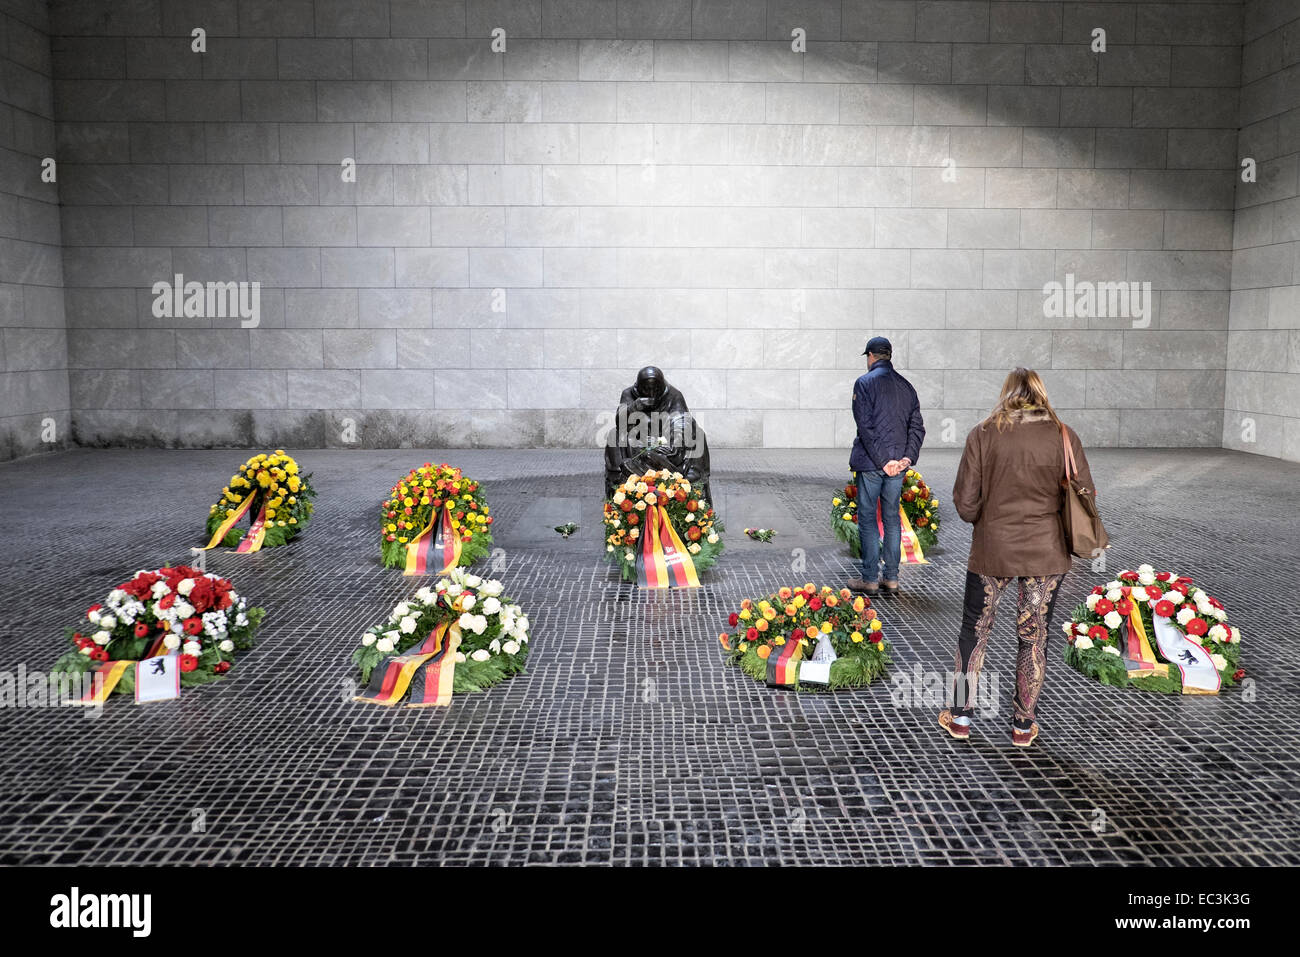 Central Memorial of the Federal Republic of Germany for the Victims of War and Dictatorship on Unter den Linden, - Stock Image